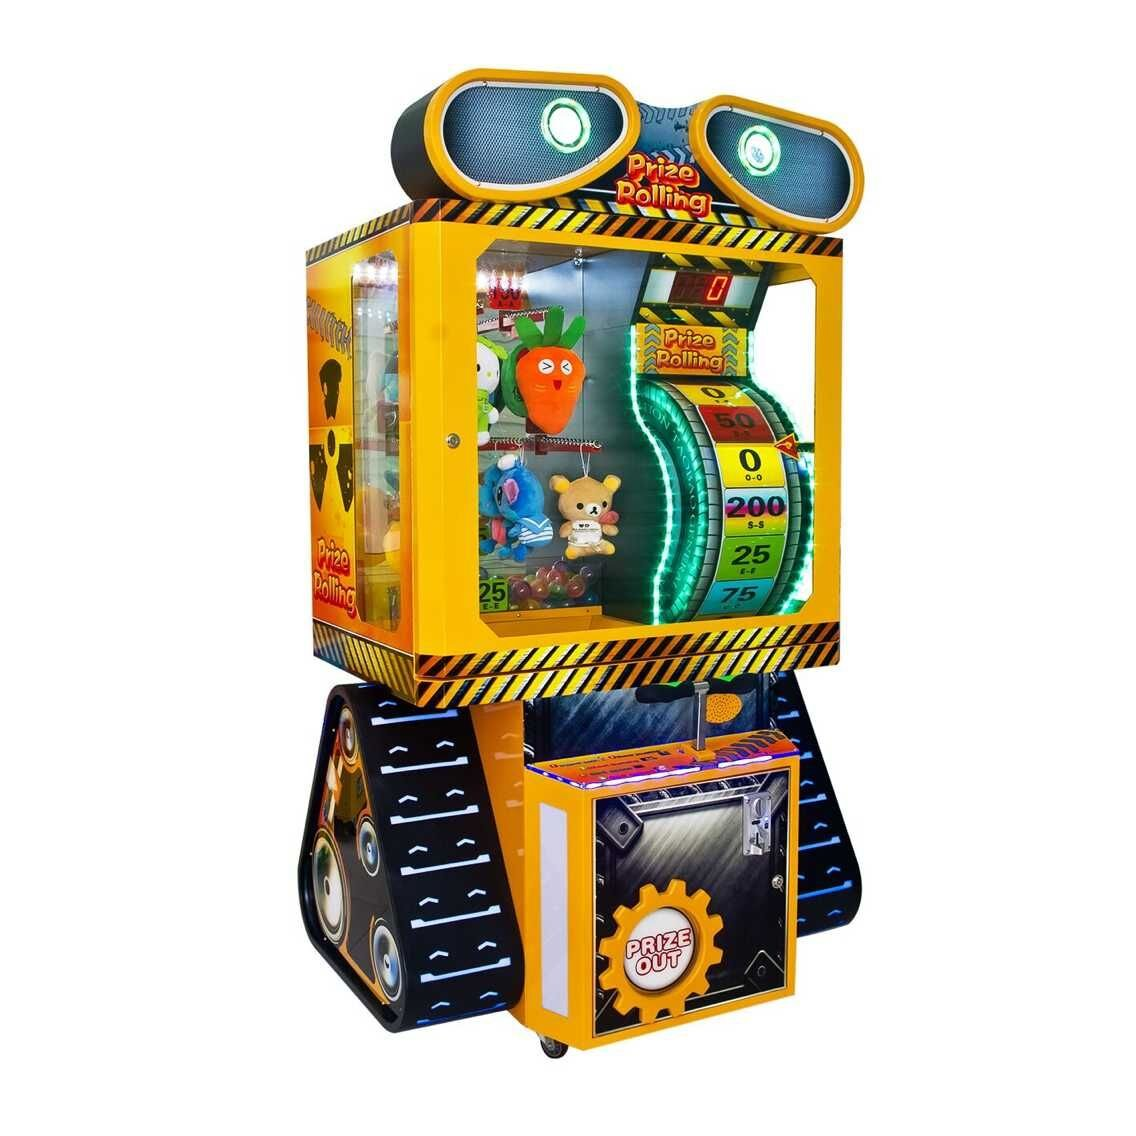 prize rolling gift arcade game machine